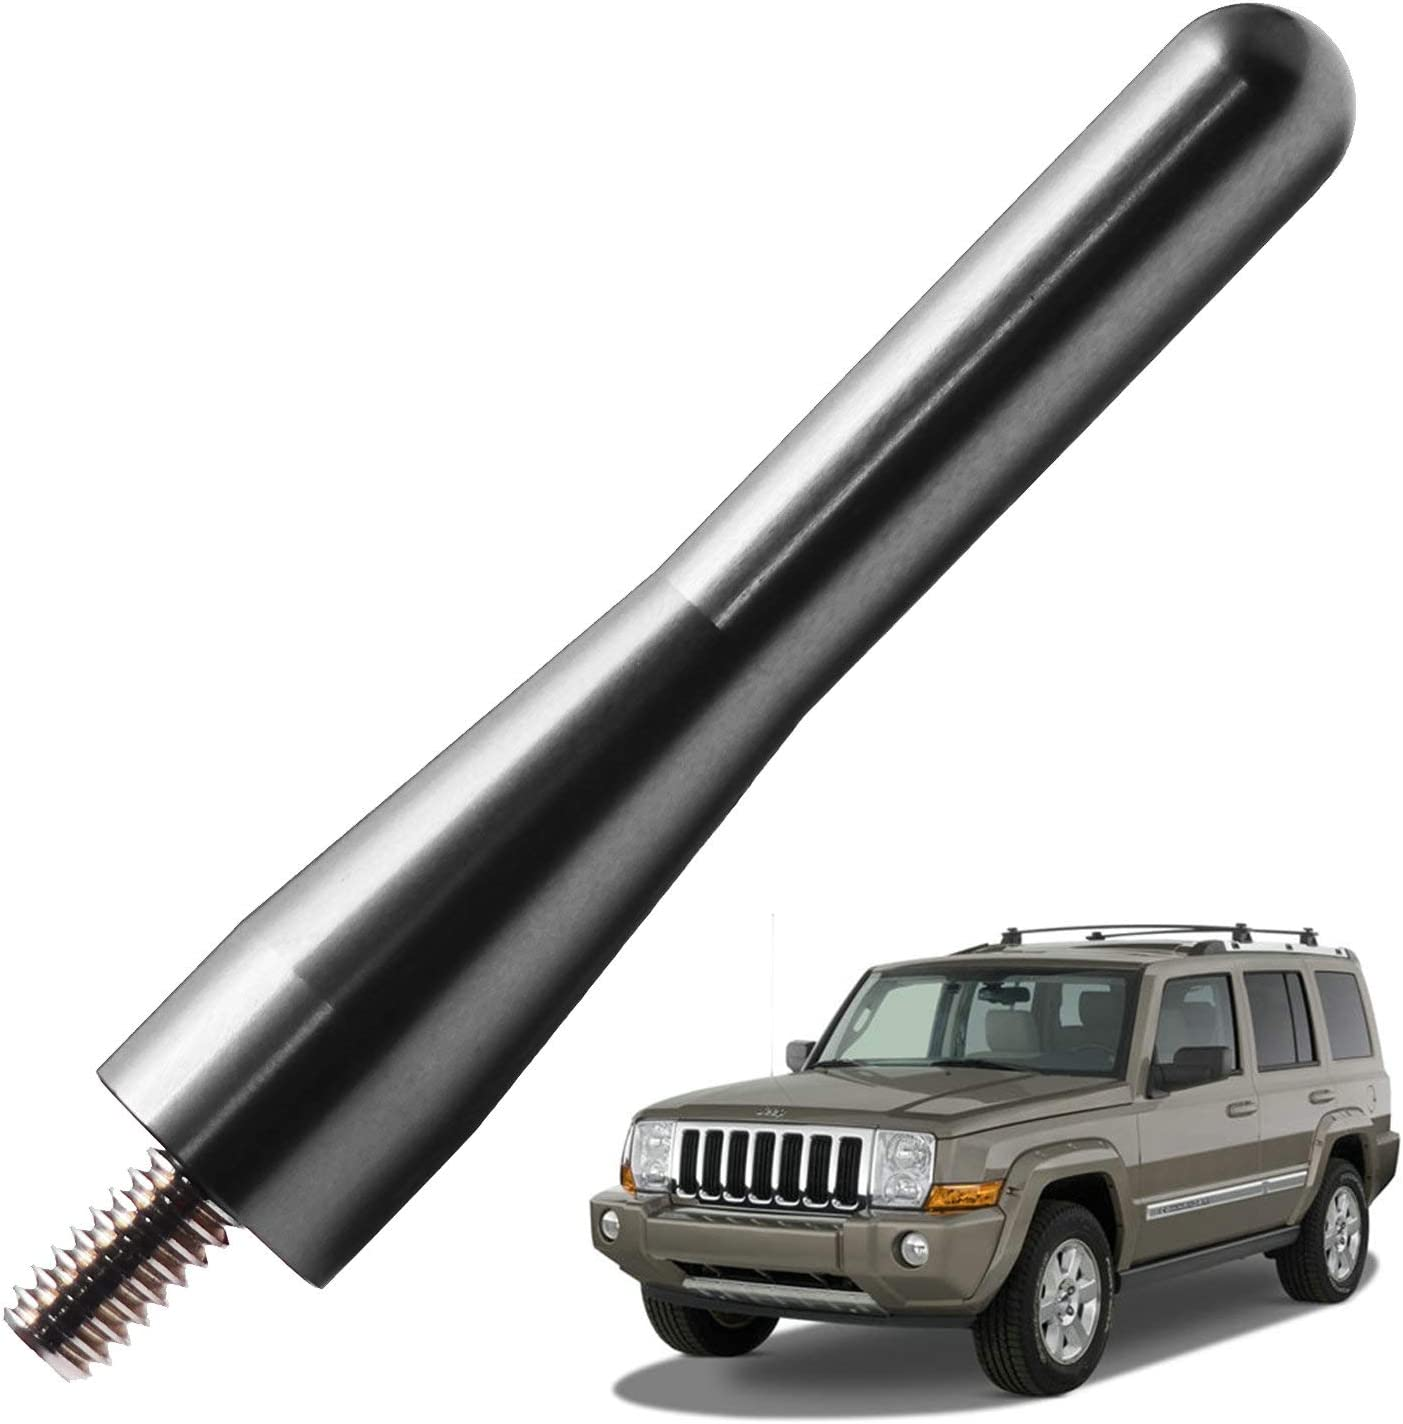 6.75 inches-Titanium JAPower Replacement Antenna Compatible with Dodge RAM Rebel 2015-2018